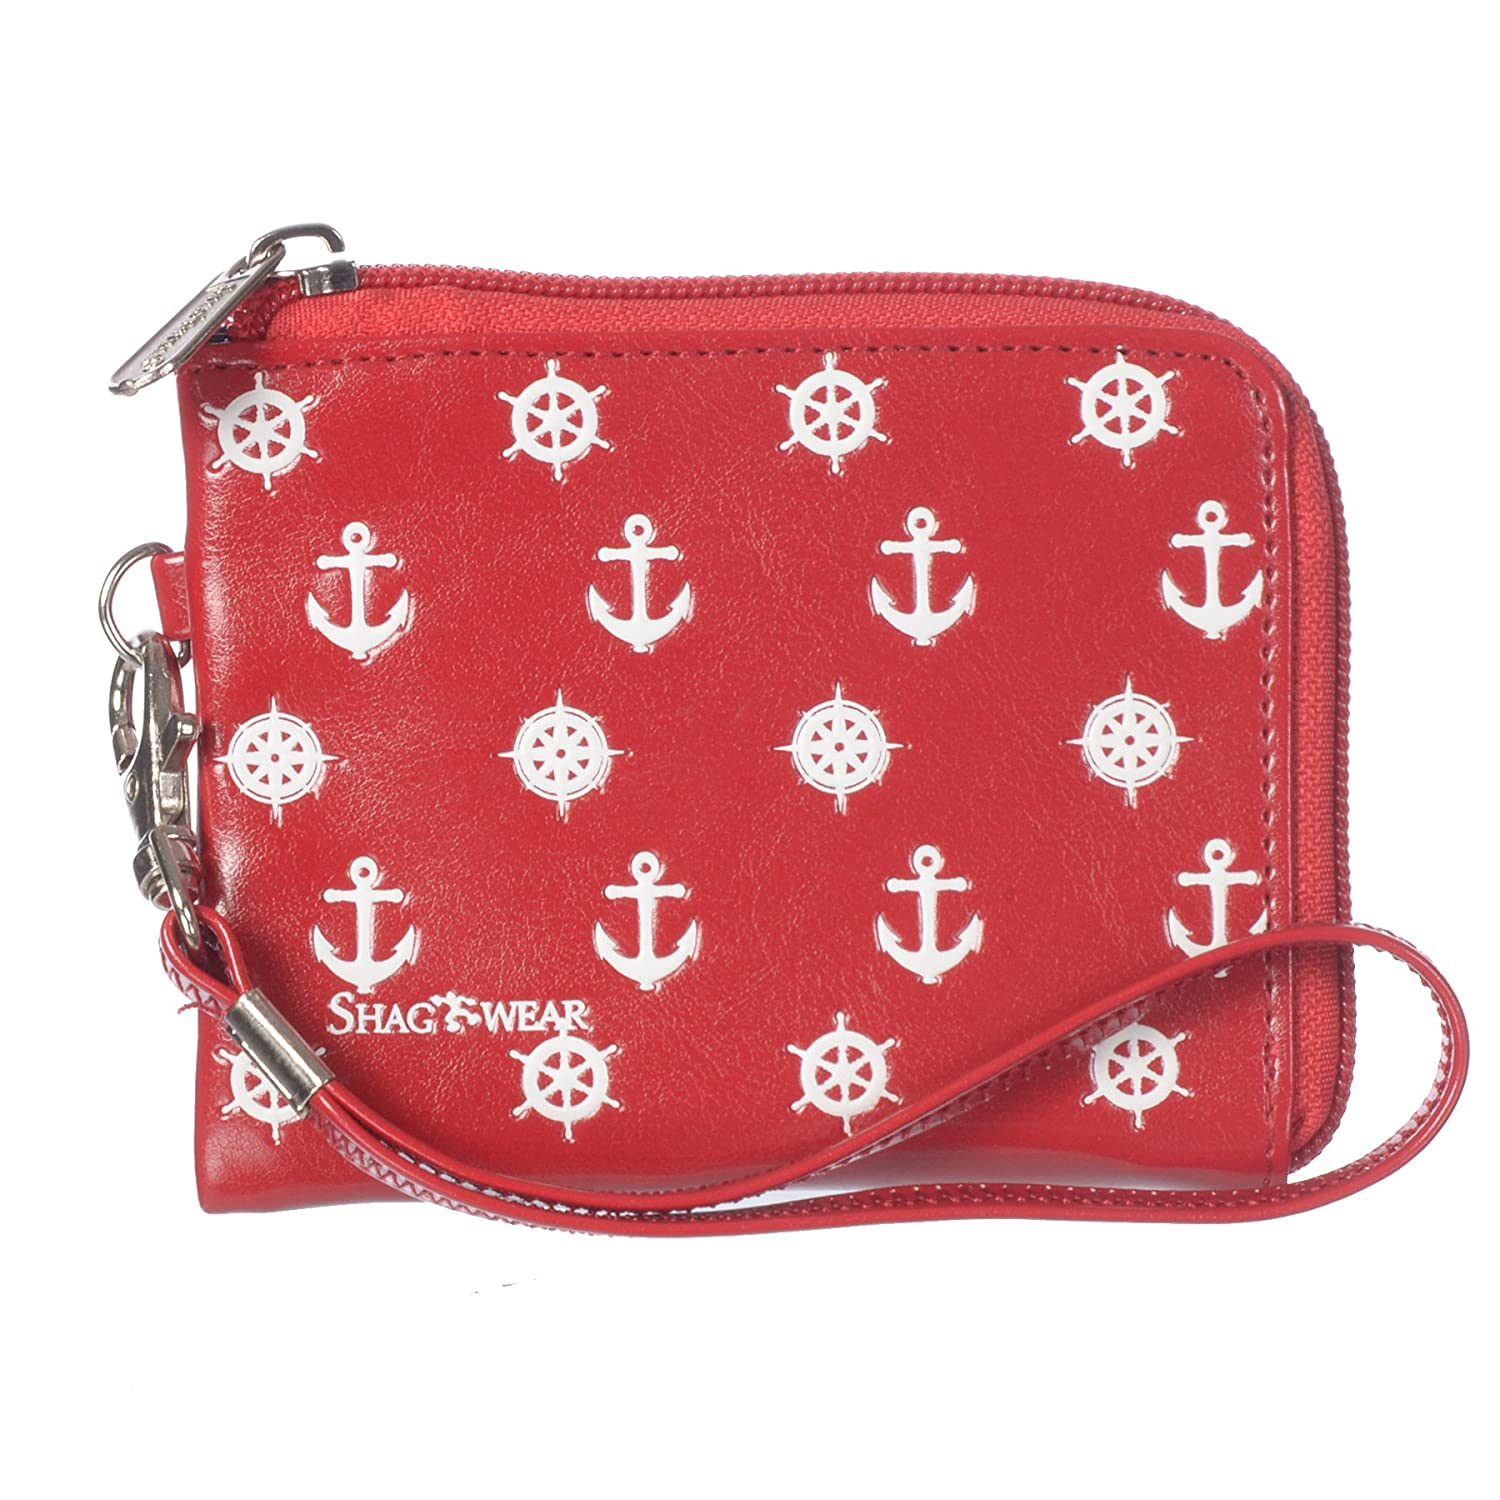 Anchors Red Shagwear Women's Birds and Insects Vegan Leather Clasp Coin Purse